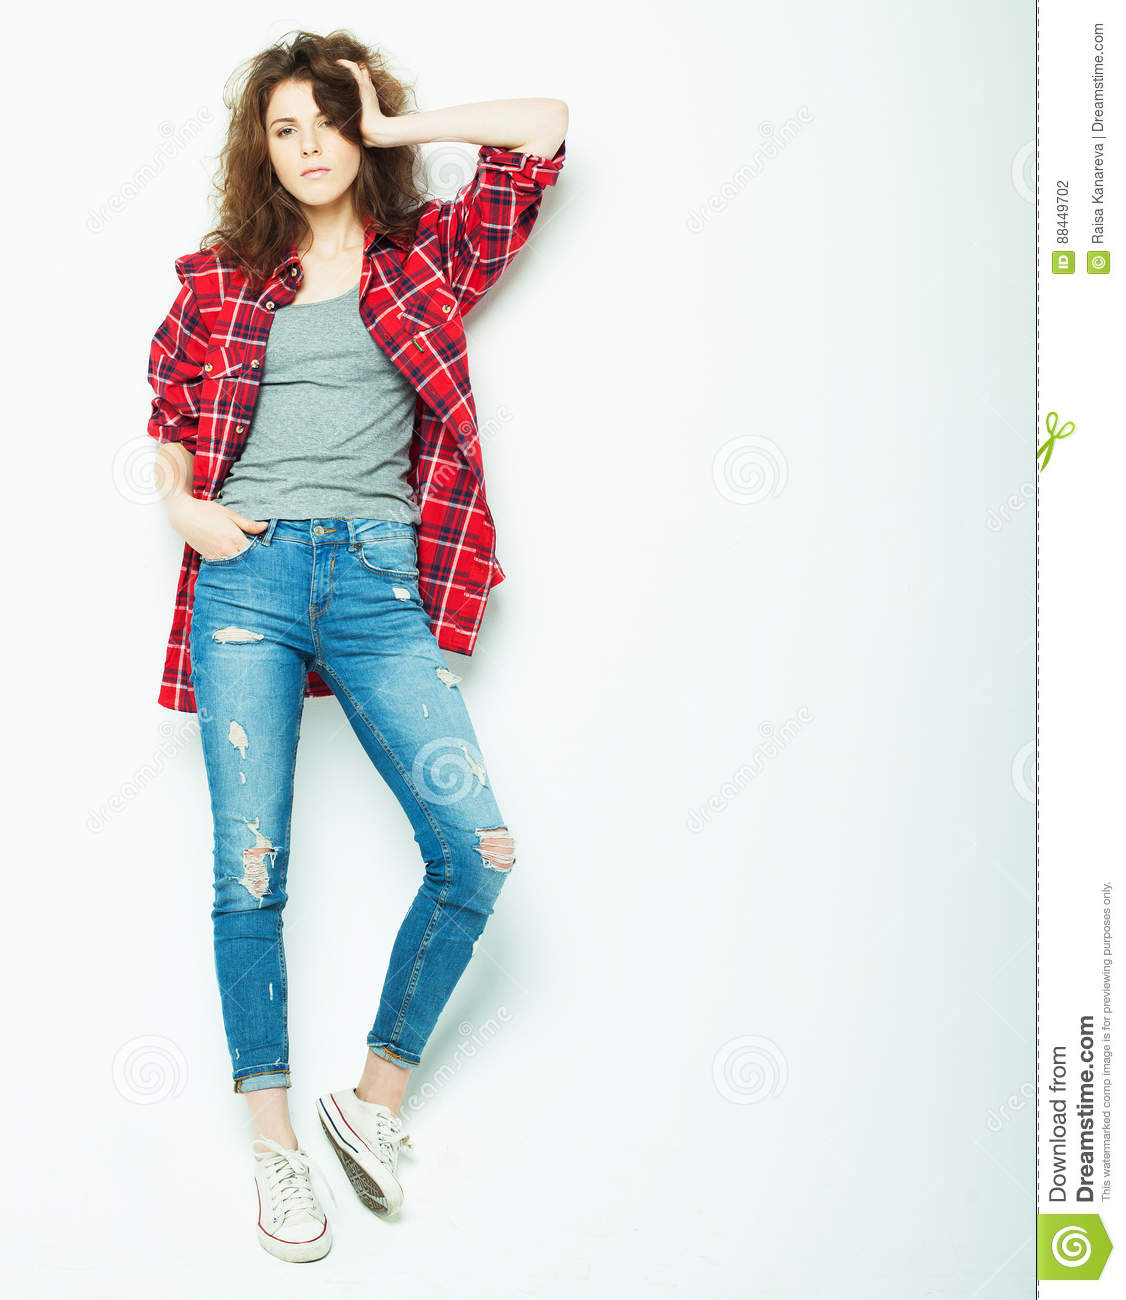 body posing lifestyle woman studio young concept preview isolated modern